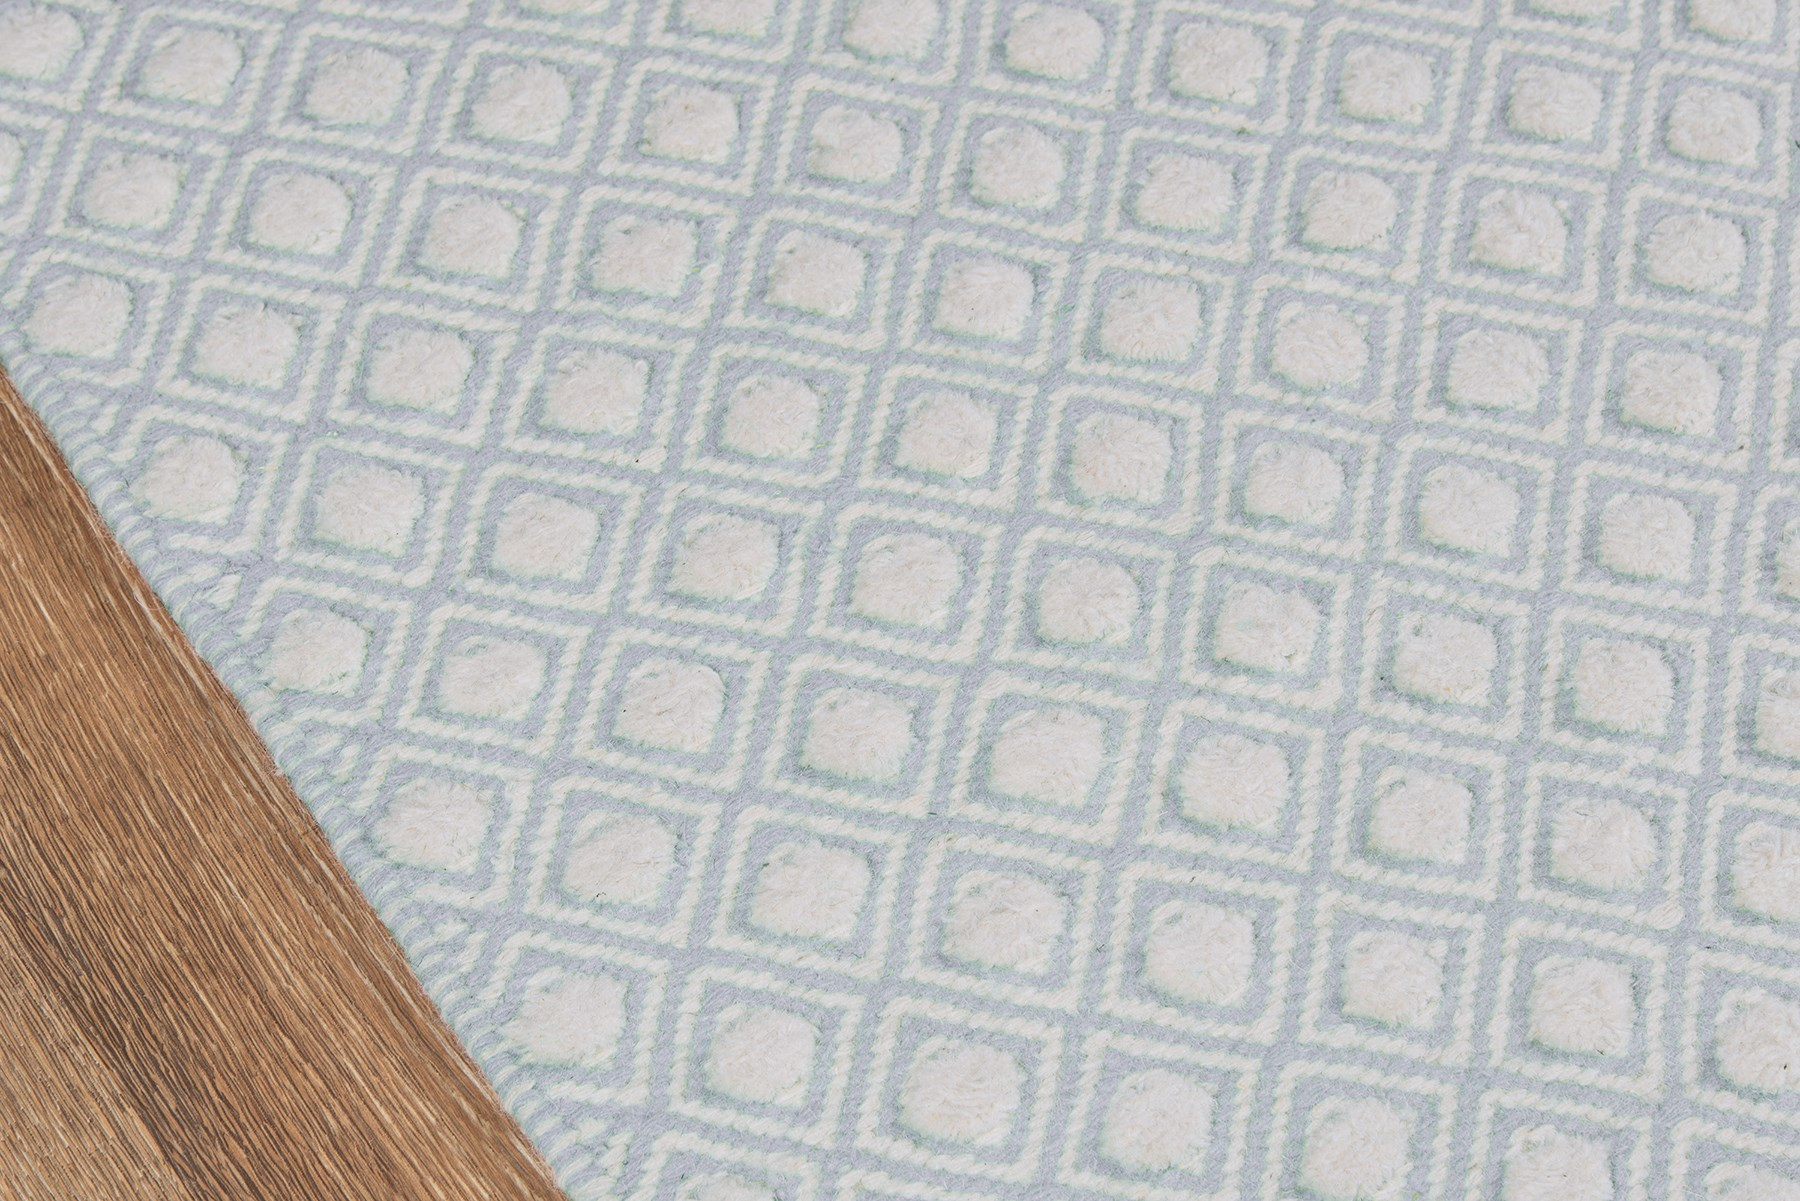 Modern LANGDLGD-2 Area Rug - Langdon Collection